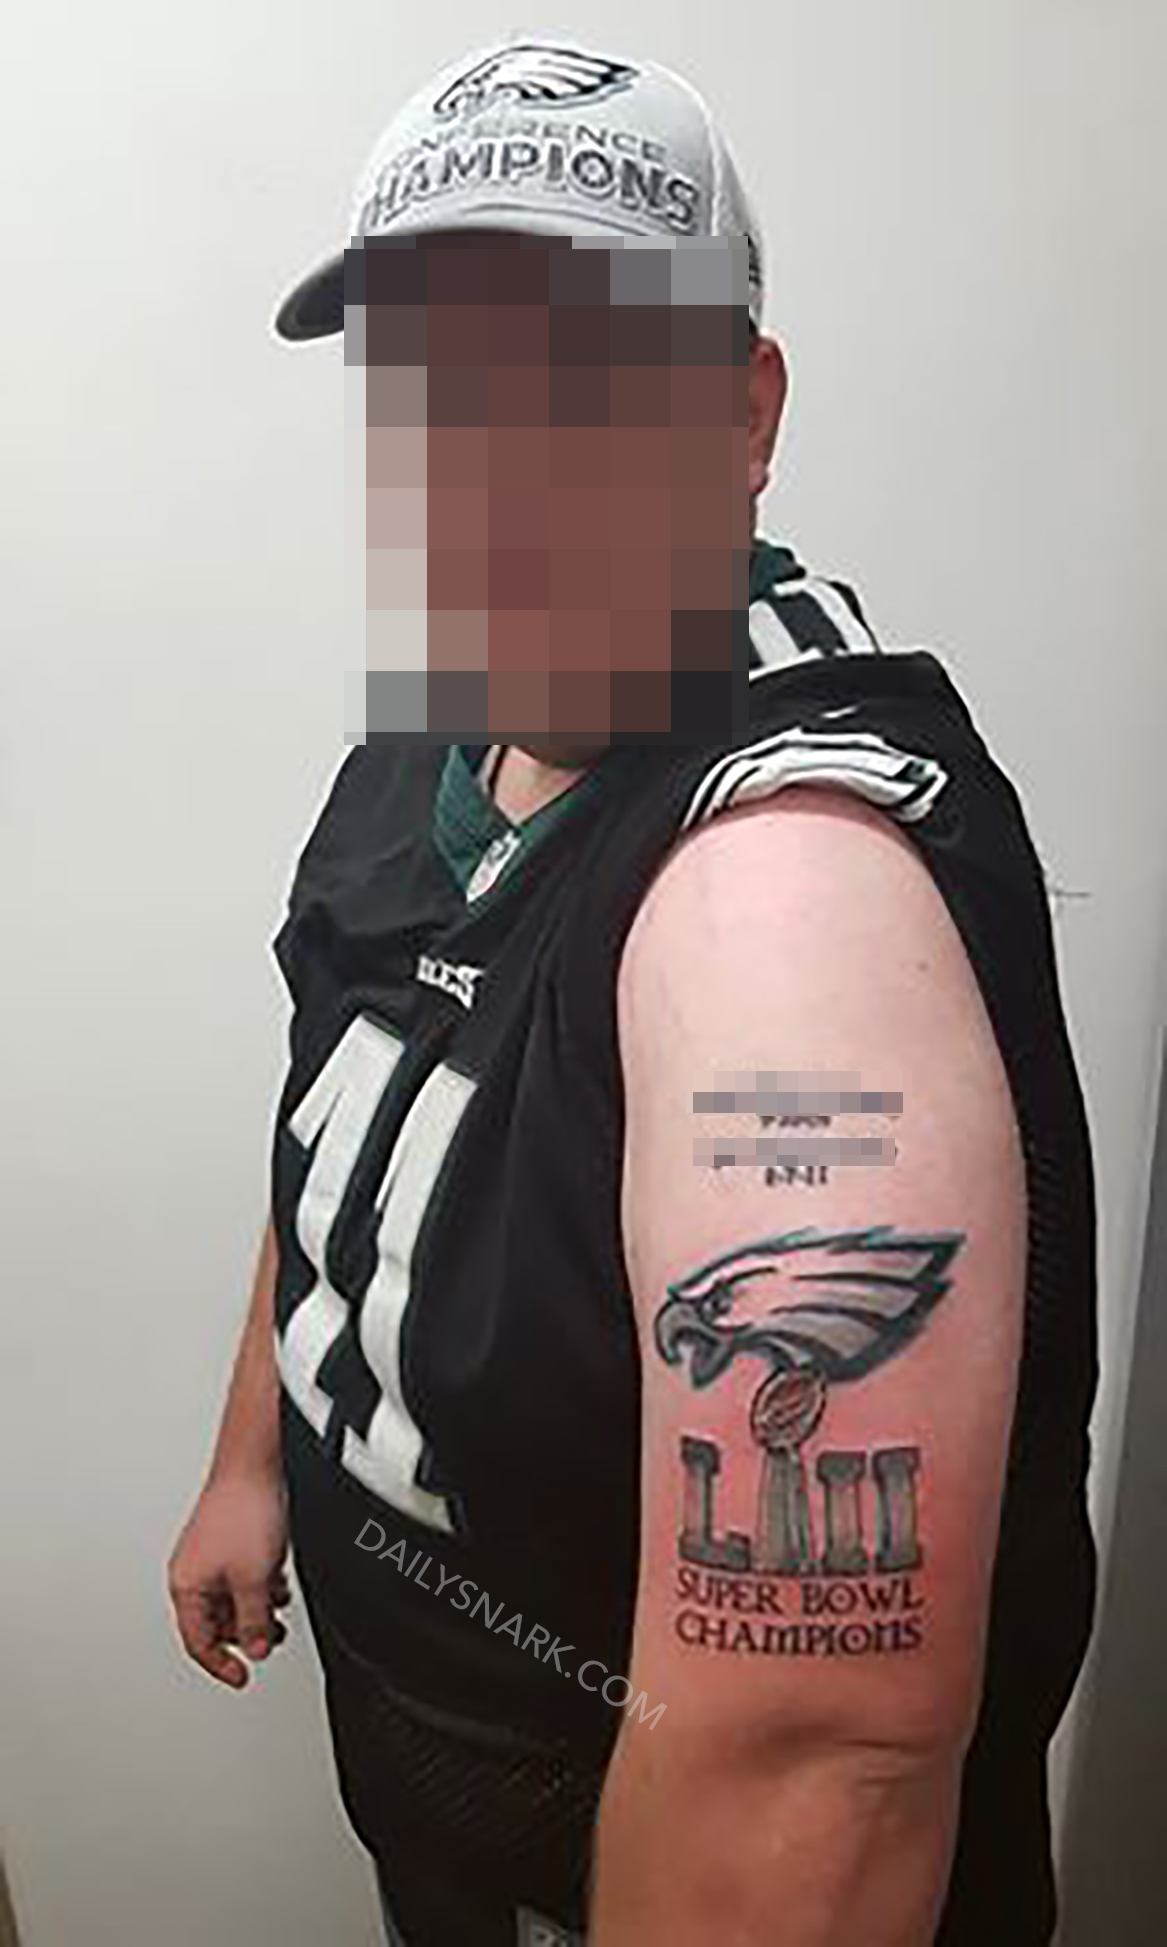 Eagles fan gets massive super bowl lii champions tattoo for Philly sports tattoo